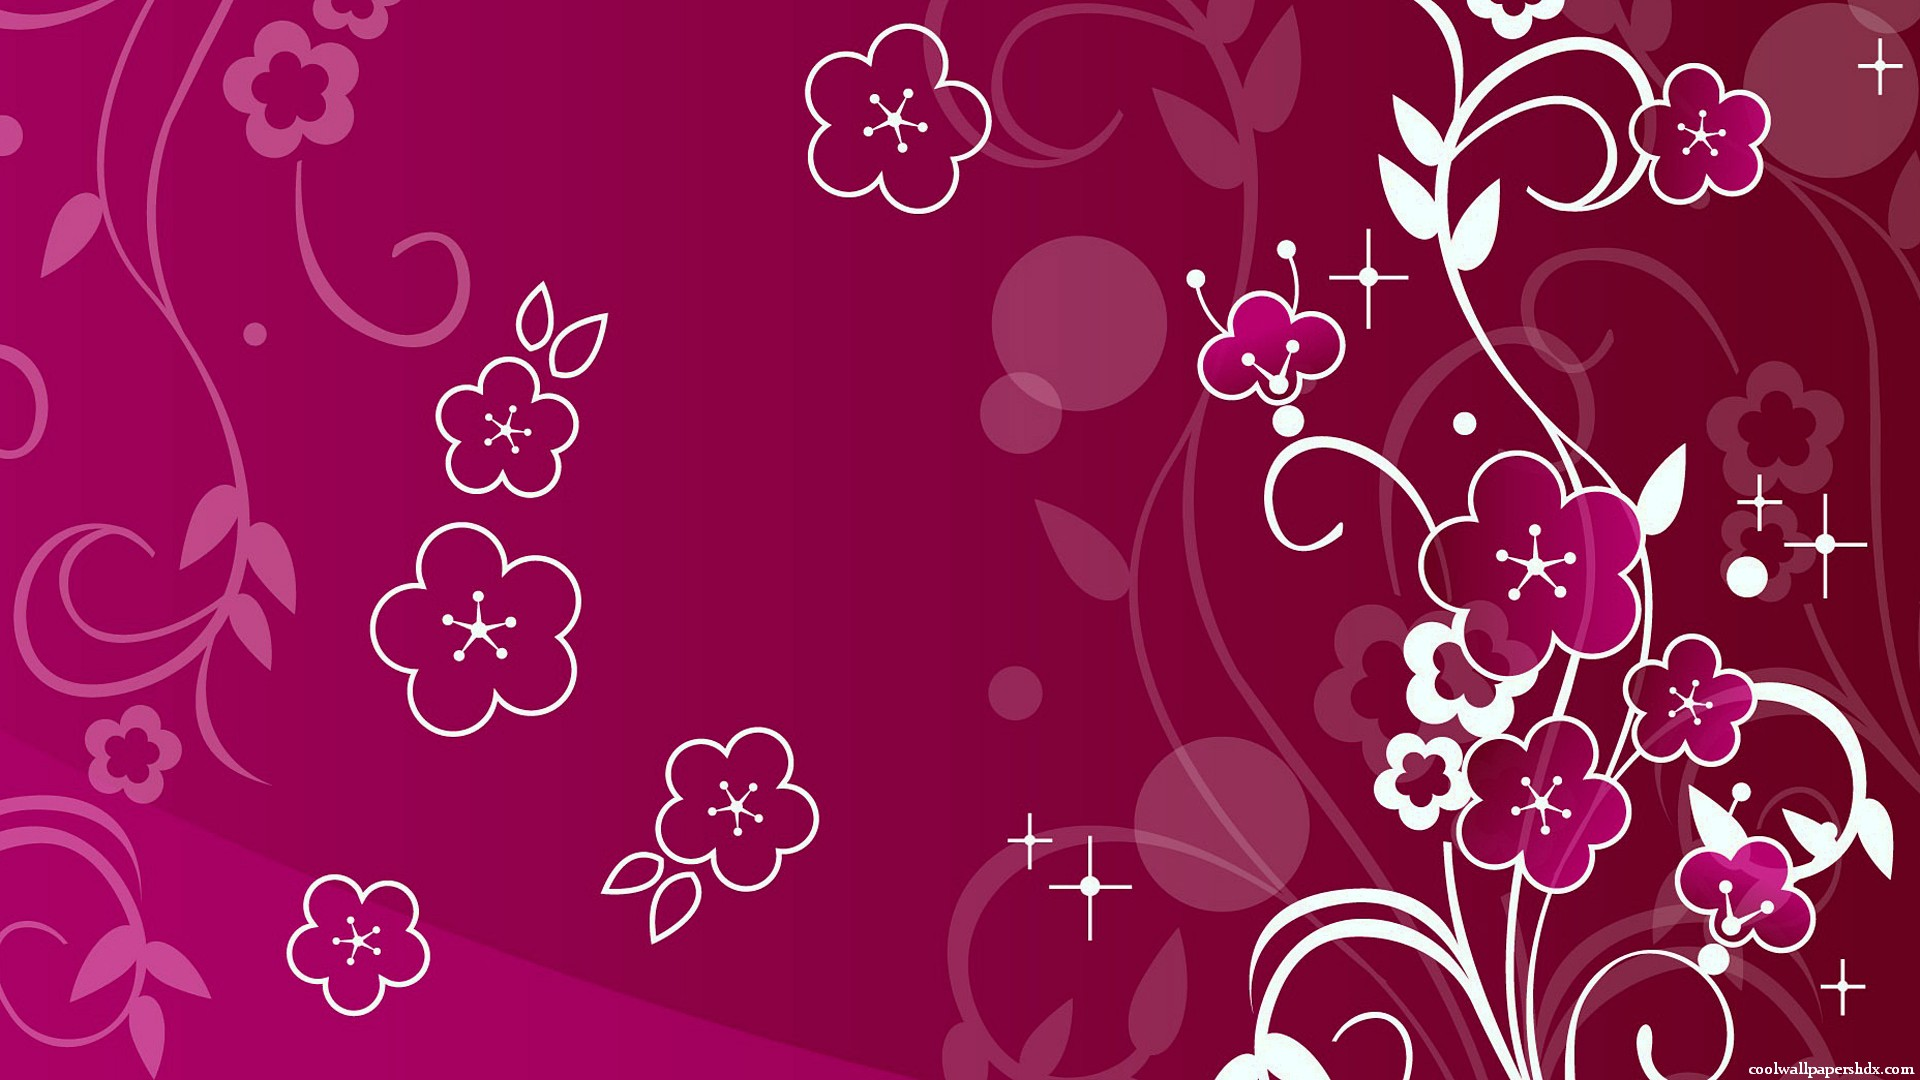 Girly backgrounds dektop wallpapers free download - Gir desktop wallpaper ...